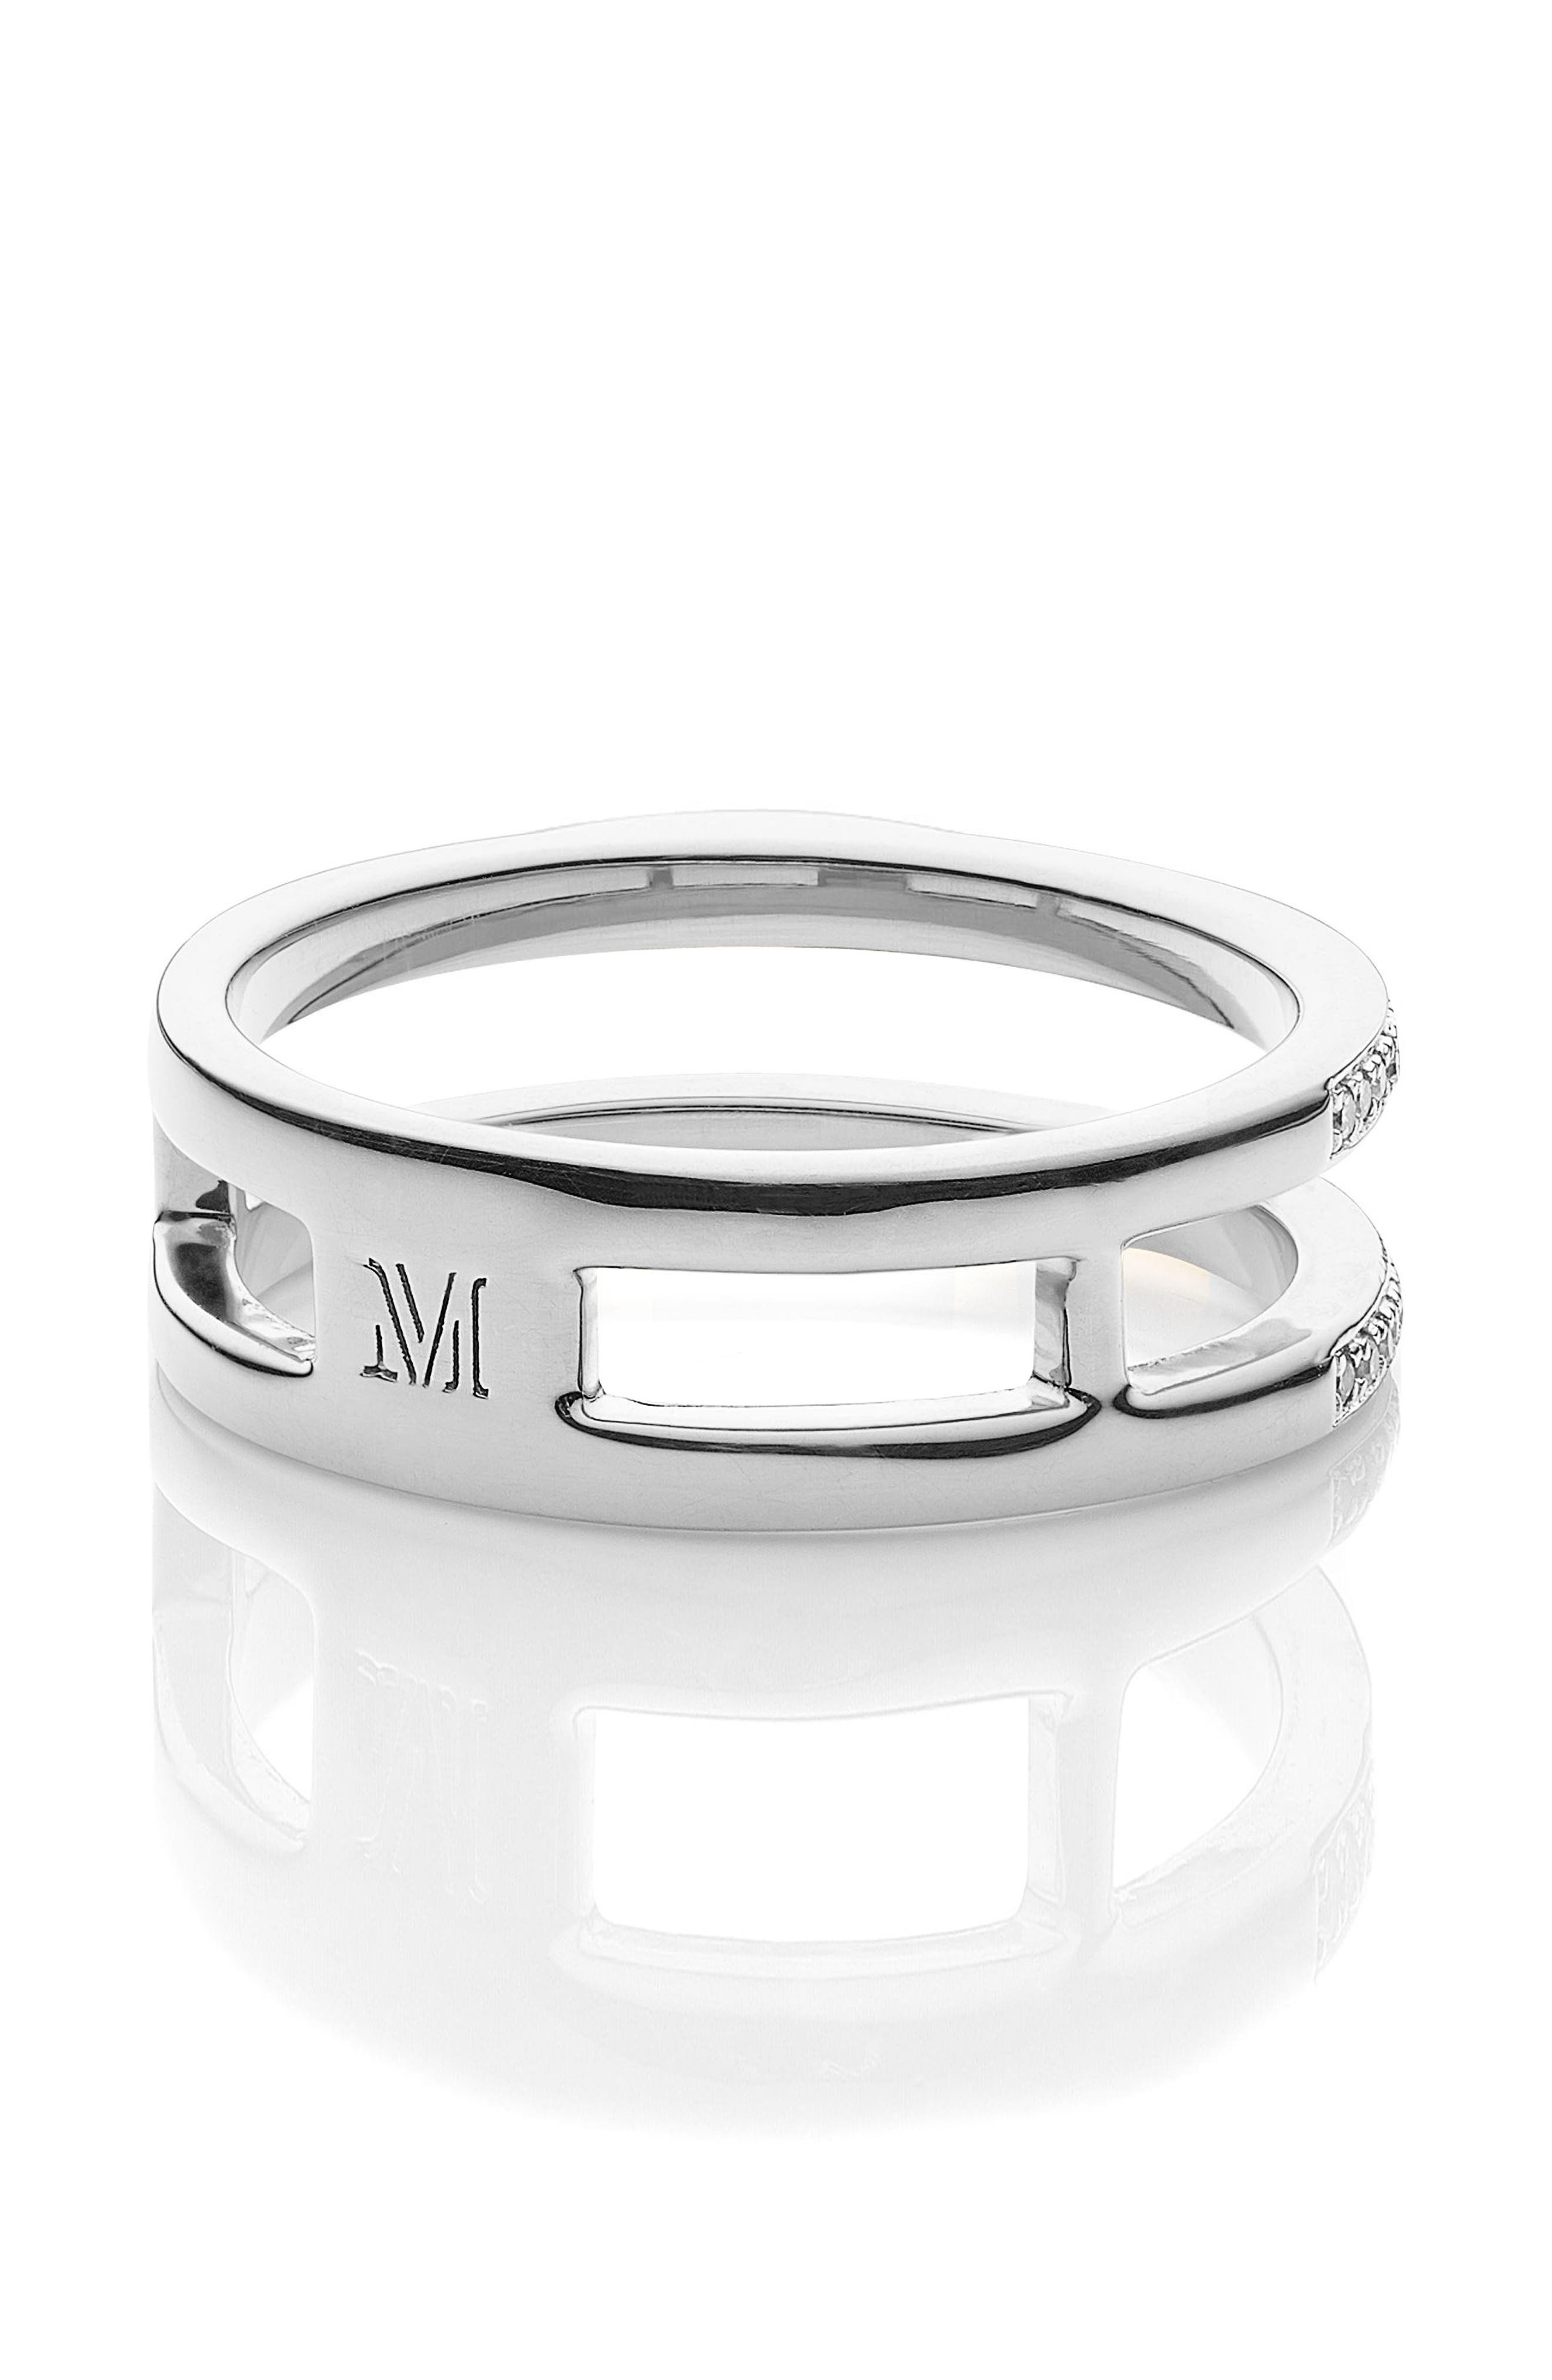 Skinny Double Band Diamond Ring,                             Alternate thumbnail 3, color,                             SILVER